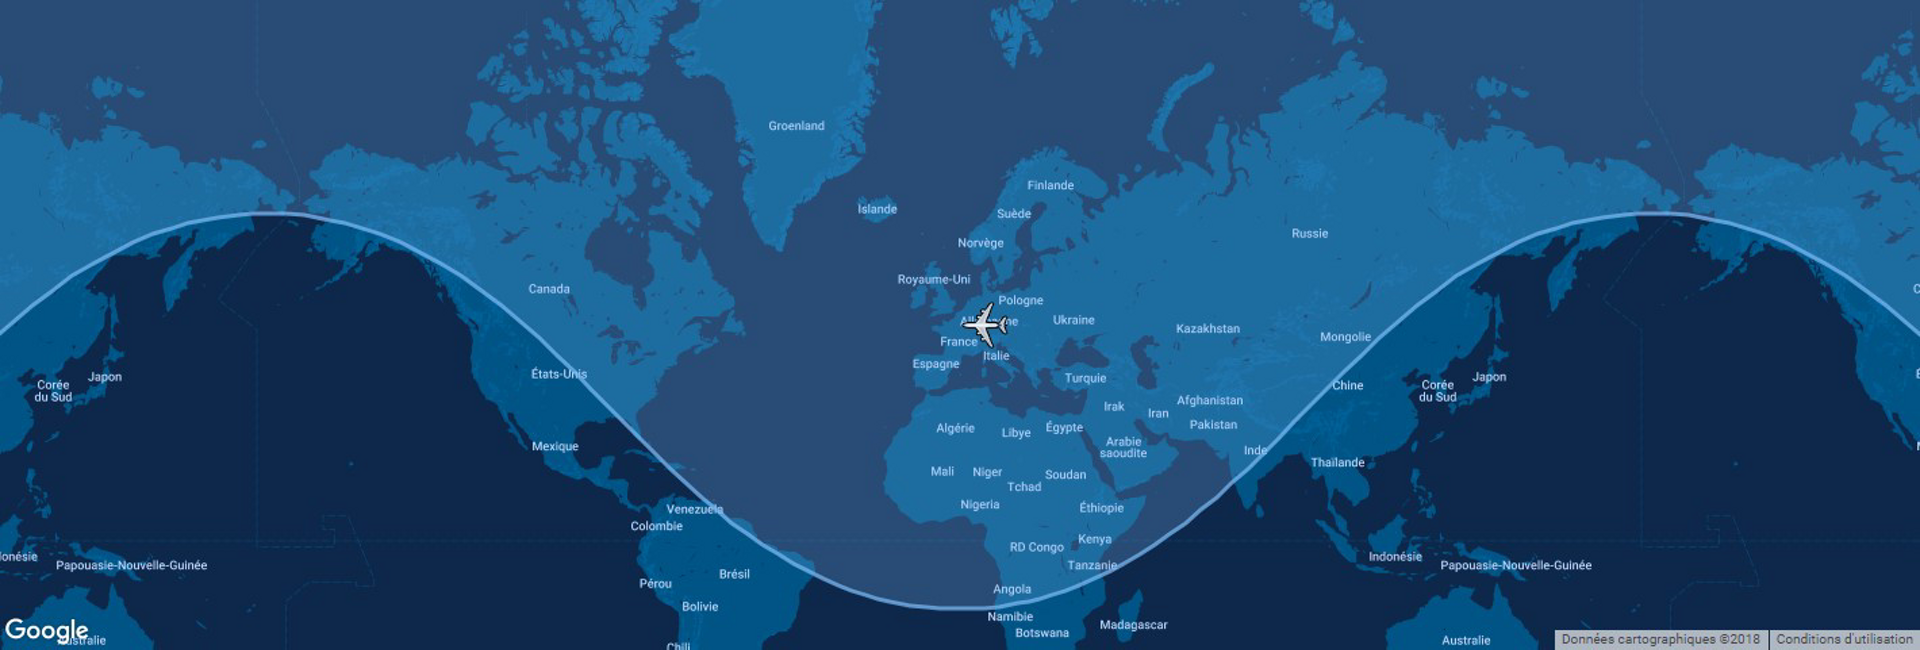 This diagram shows the typical range for Airbus' A321ceo commercial aircraft overlaid on a global map.